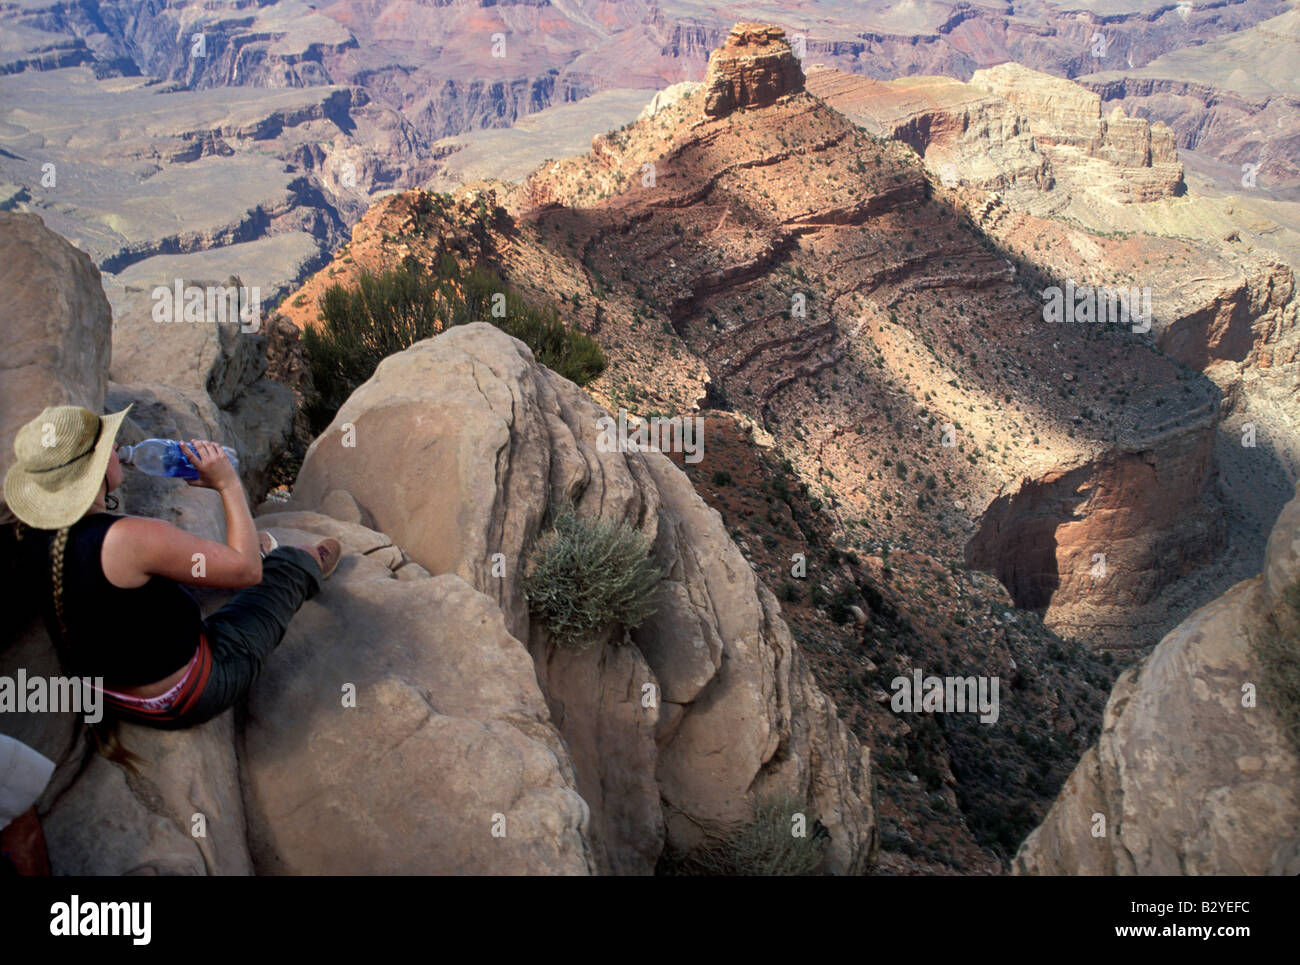 Two hikers enjoy the view from Ooh Ahh point on the South Kaibab Trail in the Grand Canyon - Stock Image